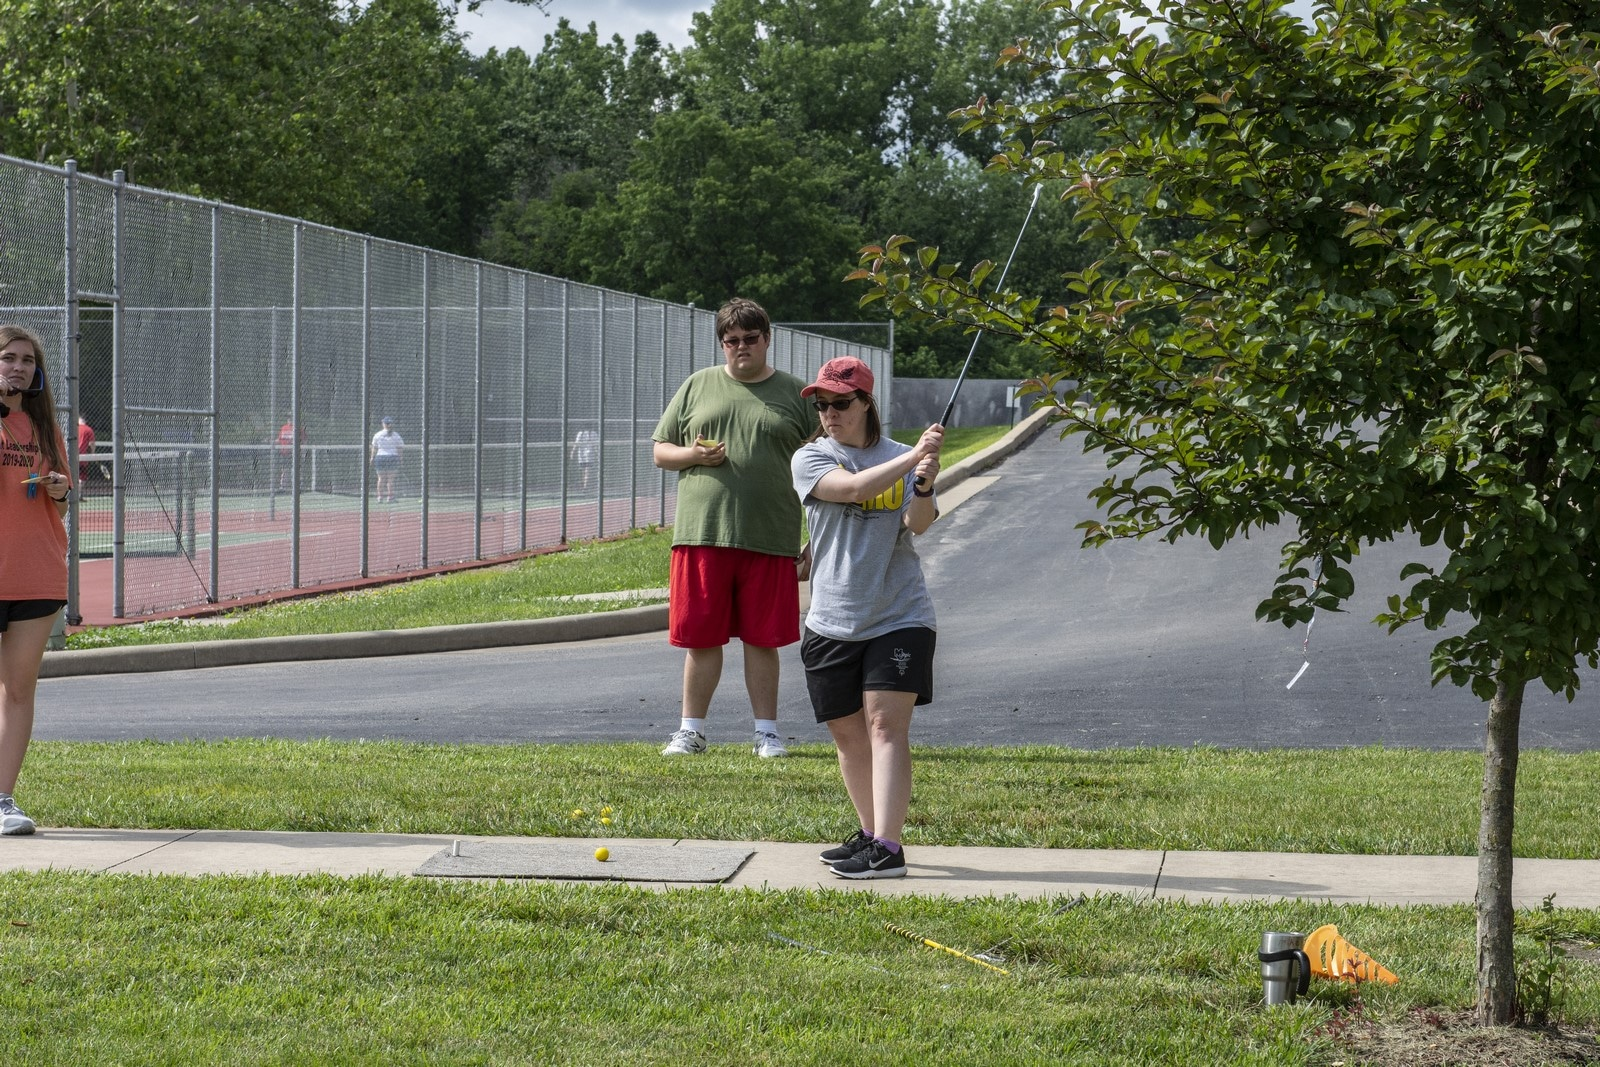 An athlete practices their golf swing off a practice pad while another athlete watches from behind